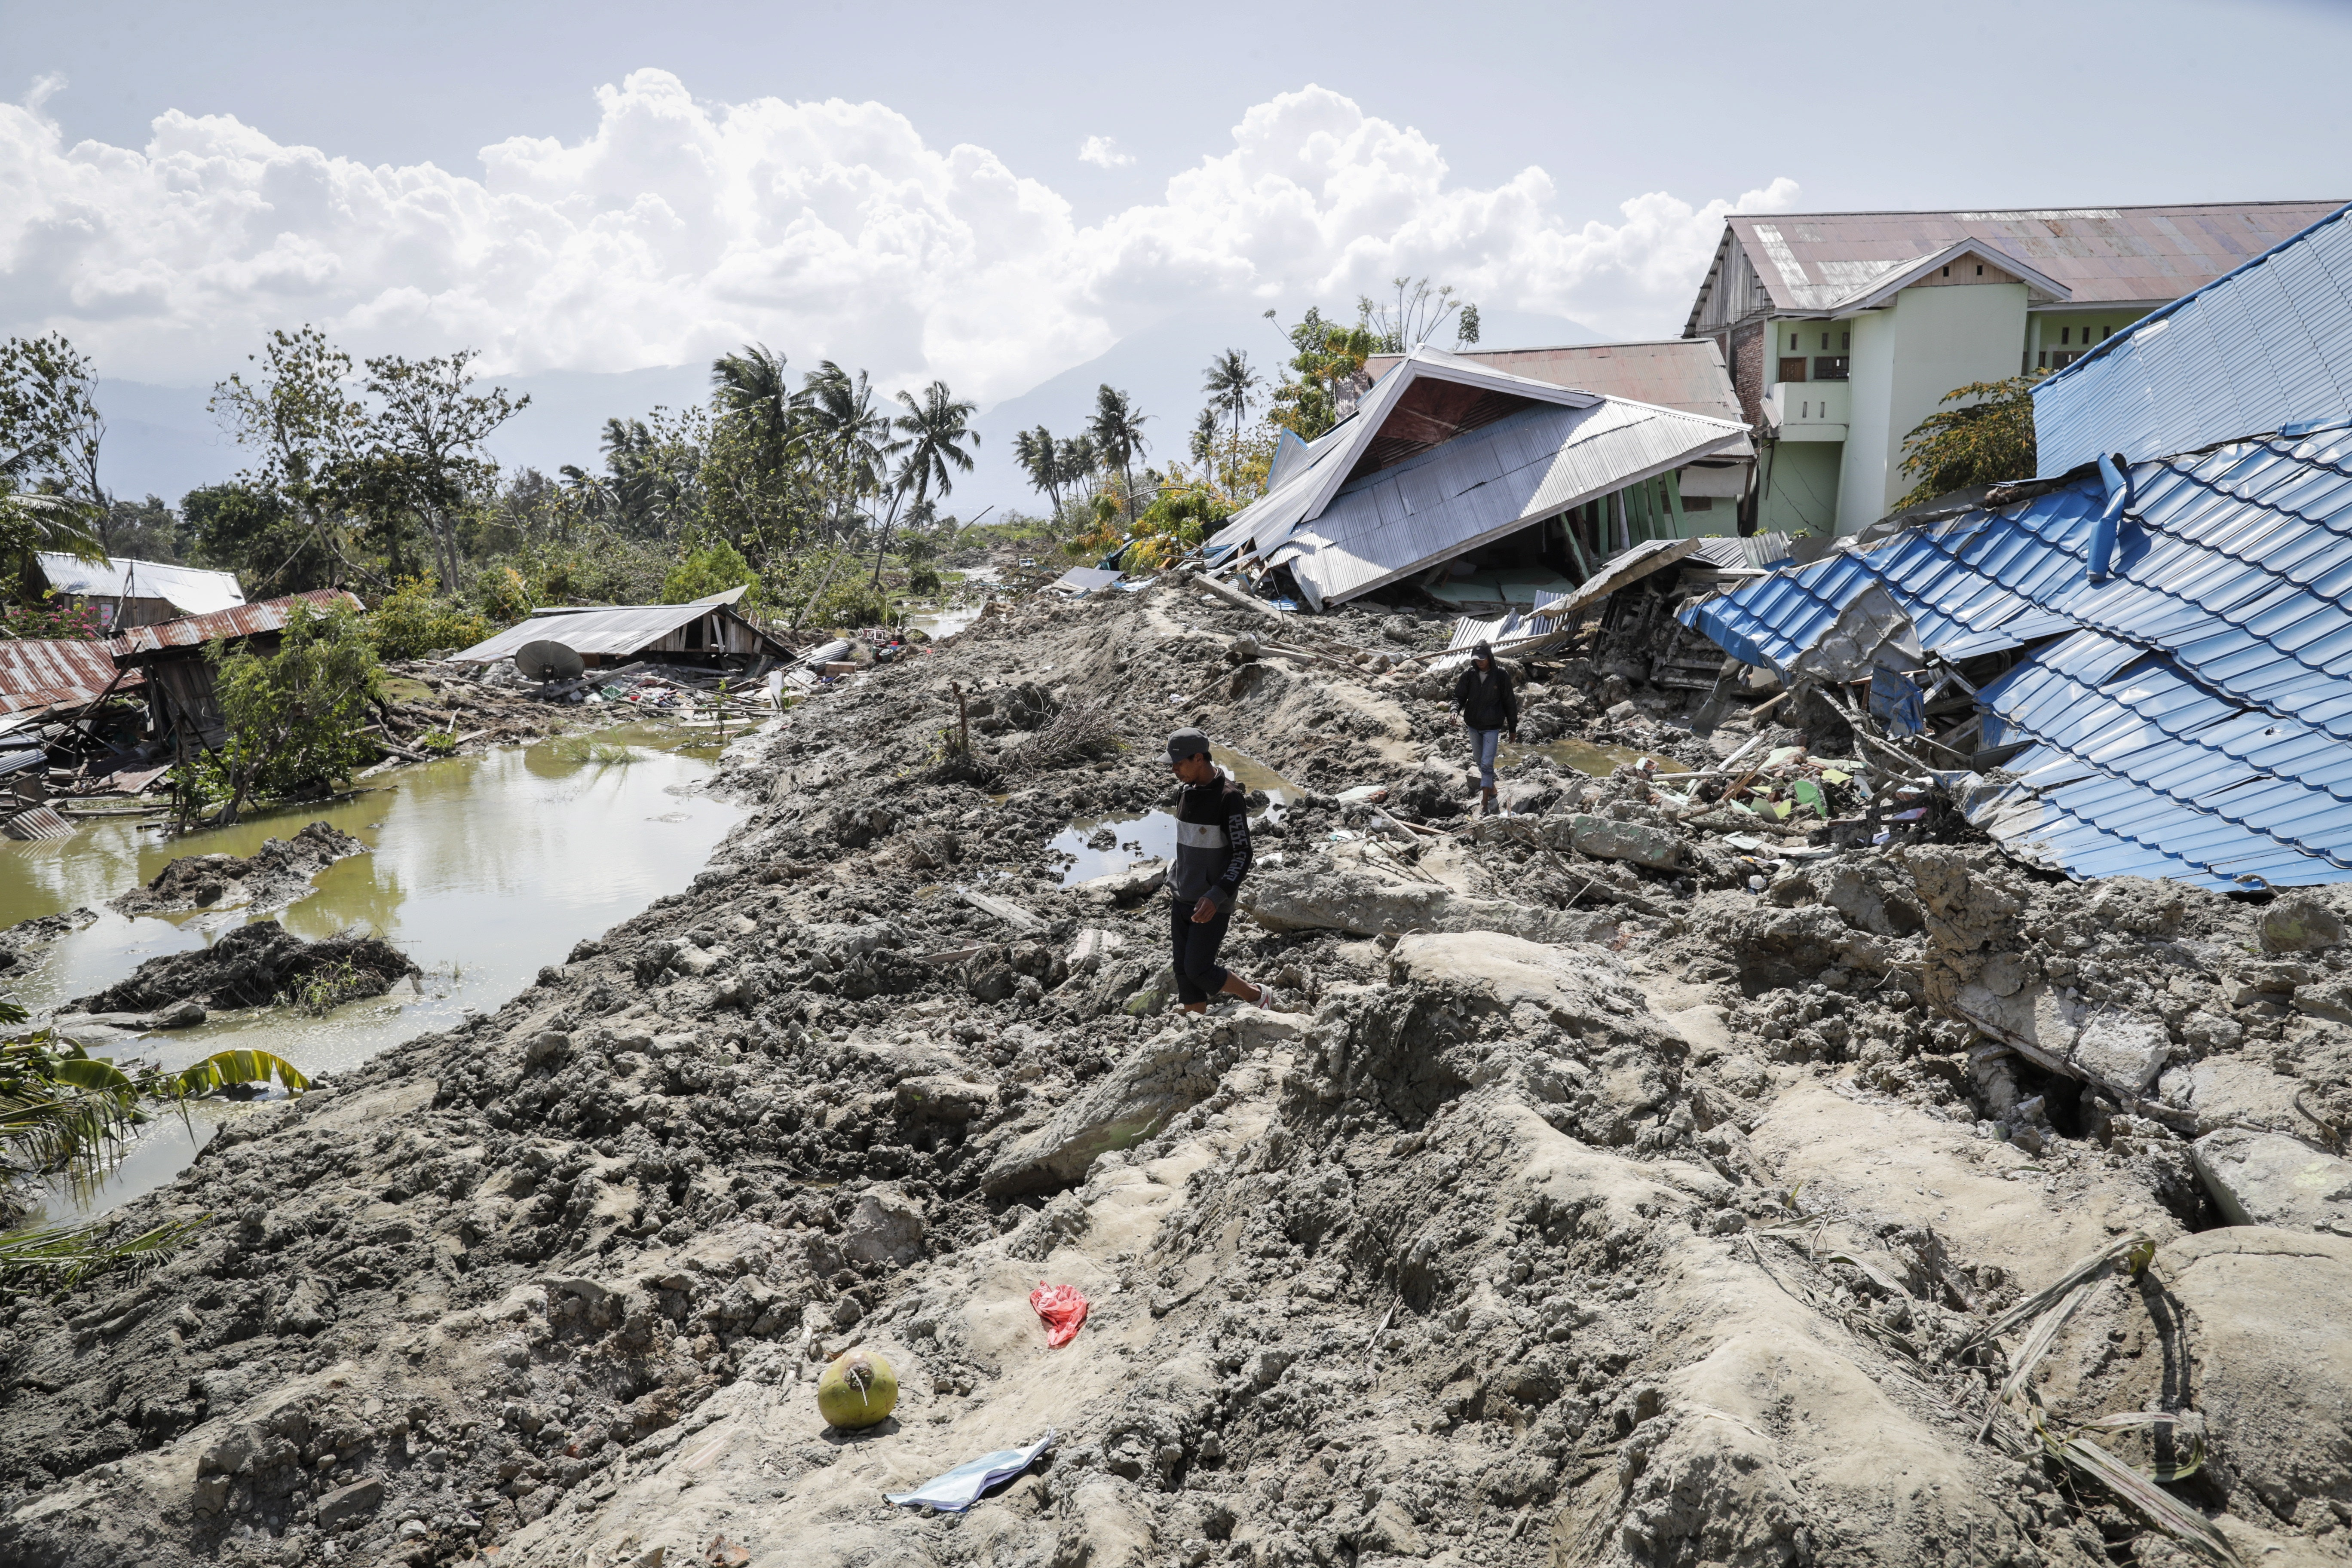 2012 research had identified Indonesian city Palu as high risk of liquefaction